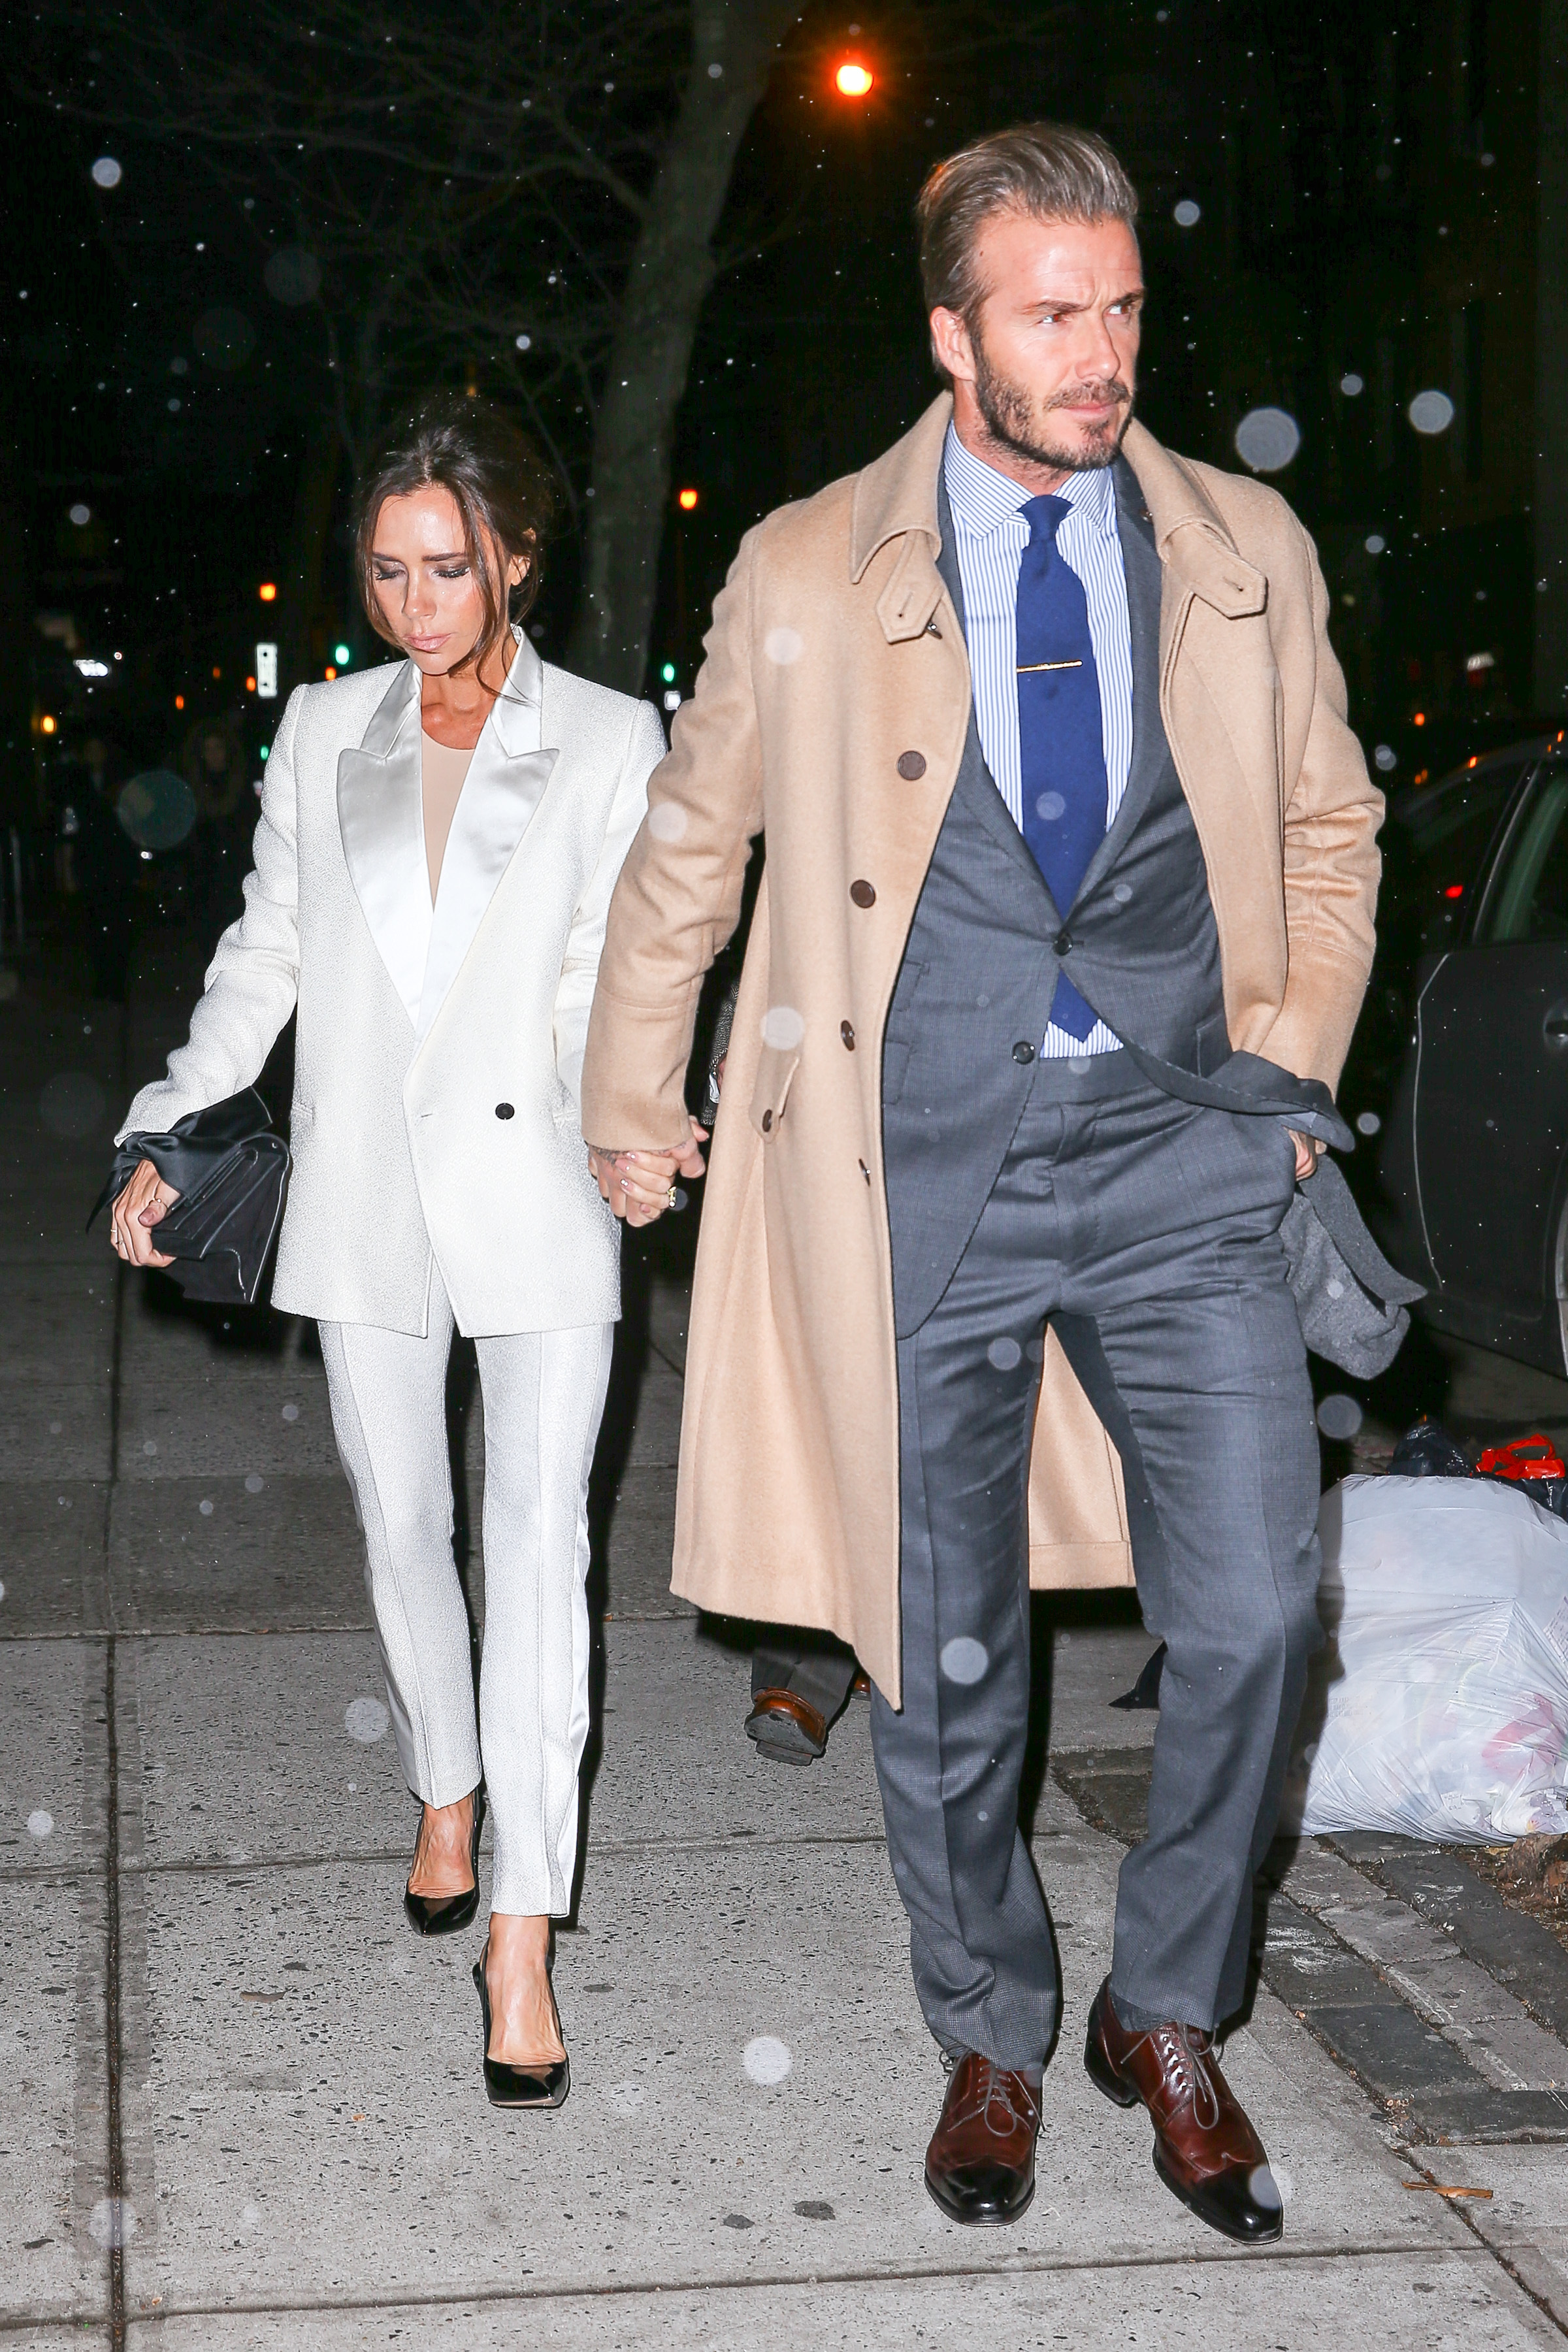 Are the Beckhams headed for divorce?